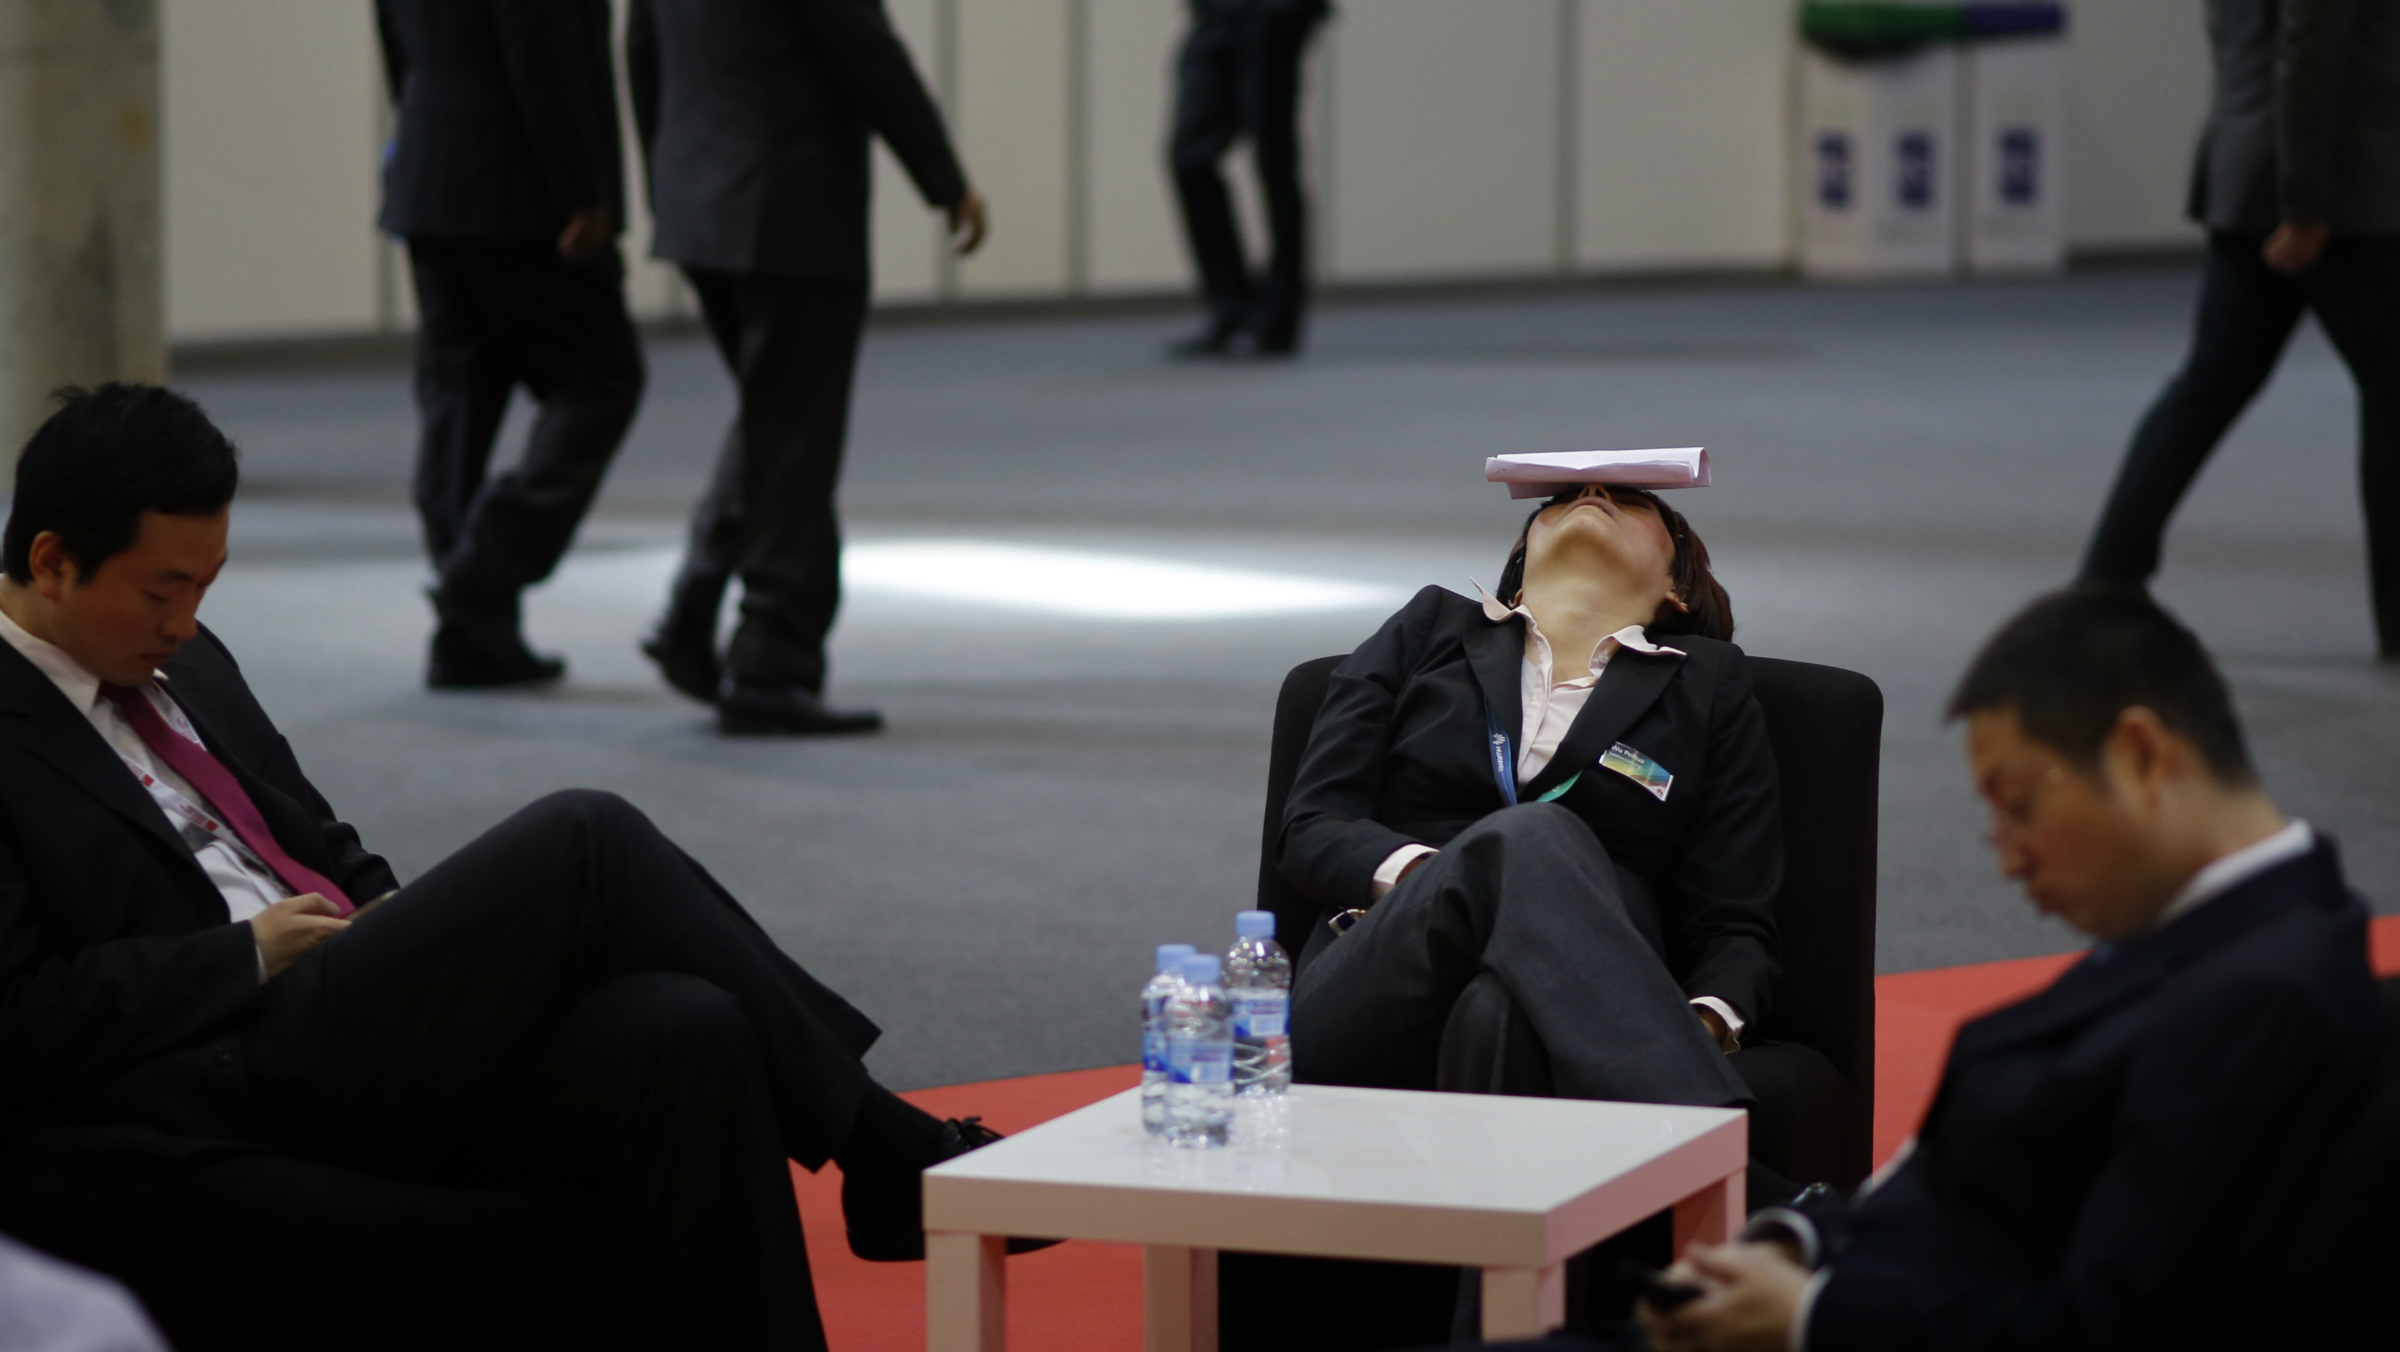 A conference member taking a nap